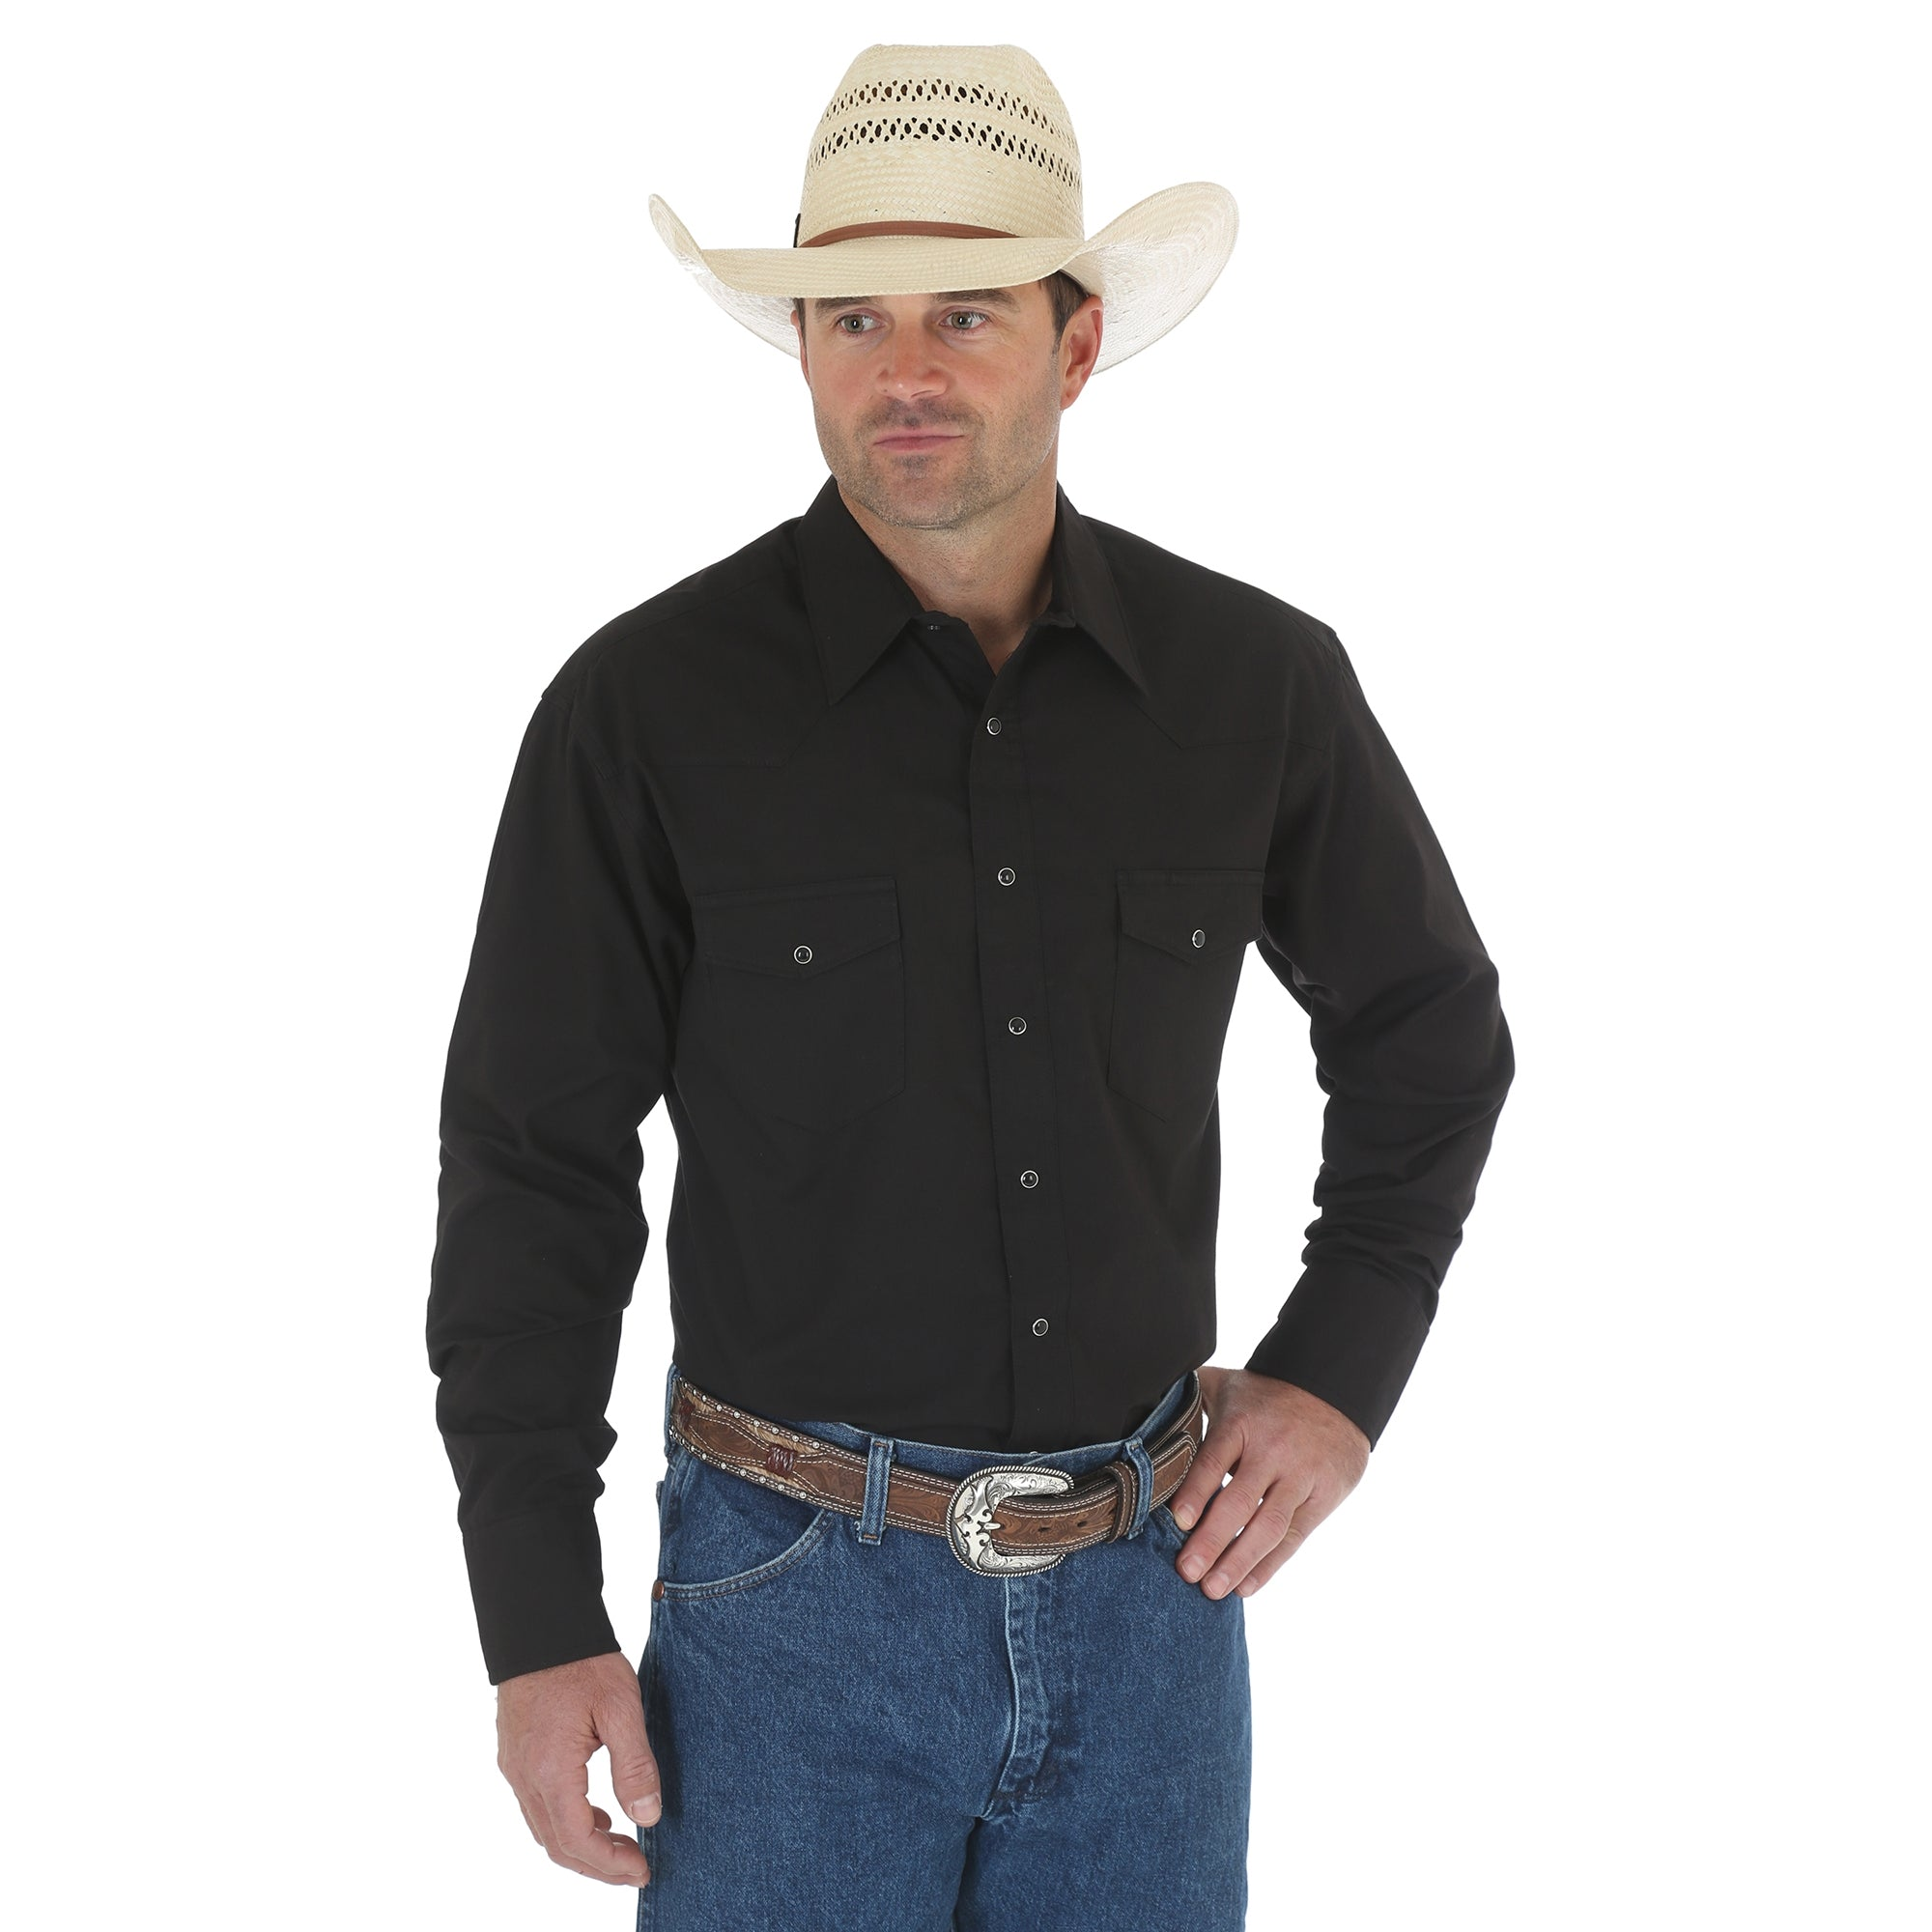 Wrangler Men's Western Long Sleeve Snap Shirt Black